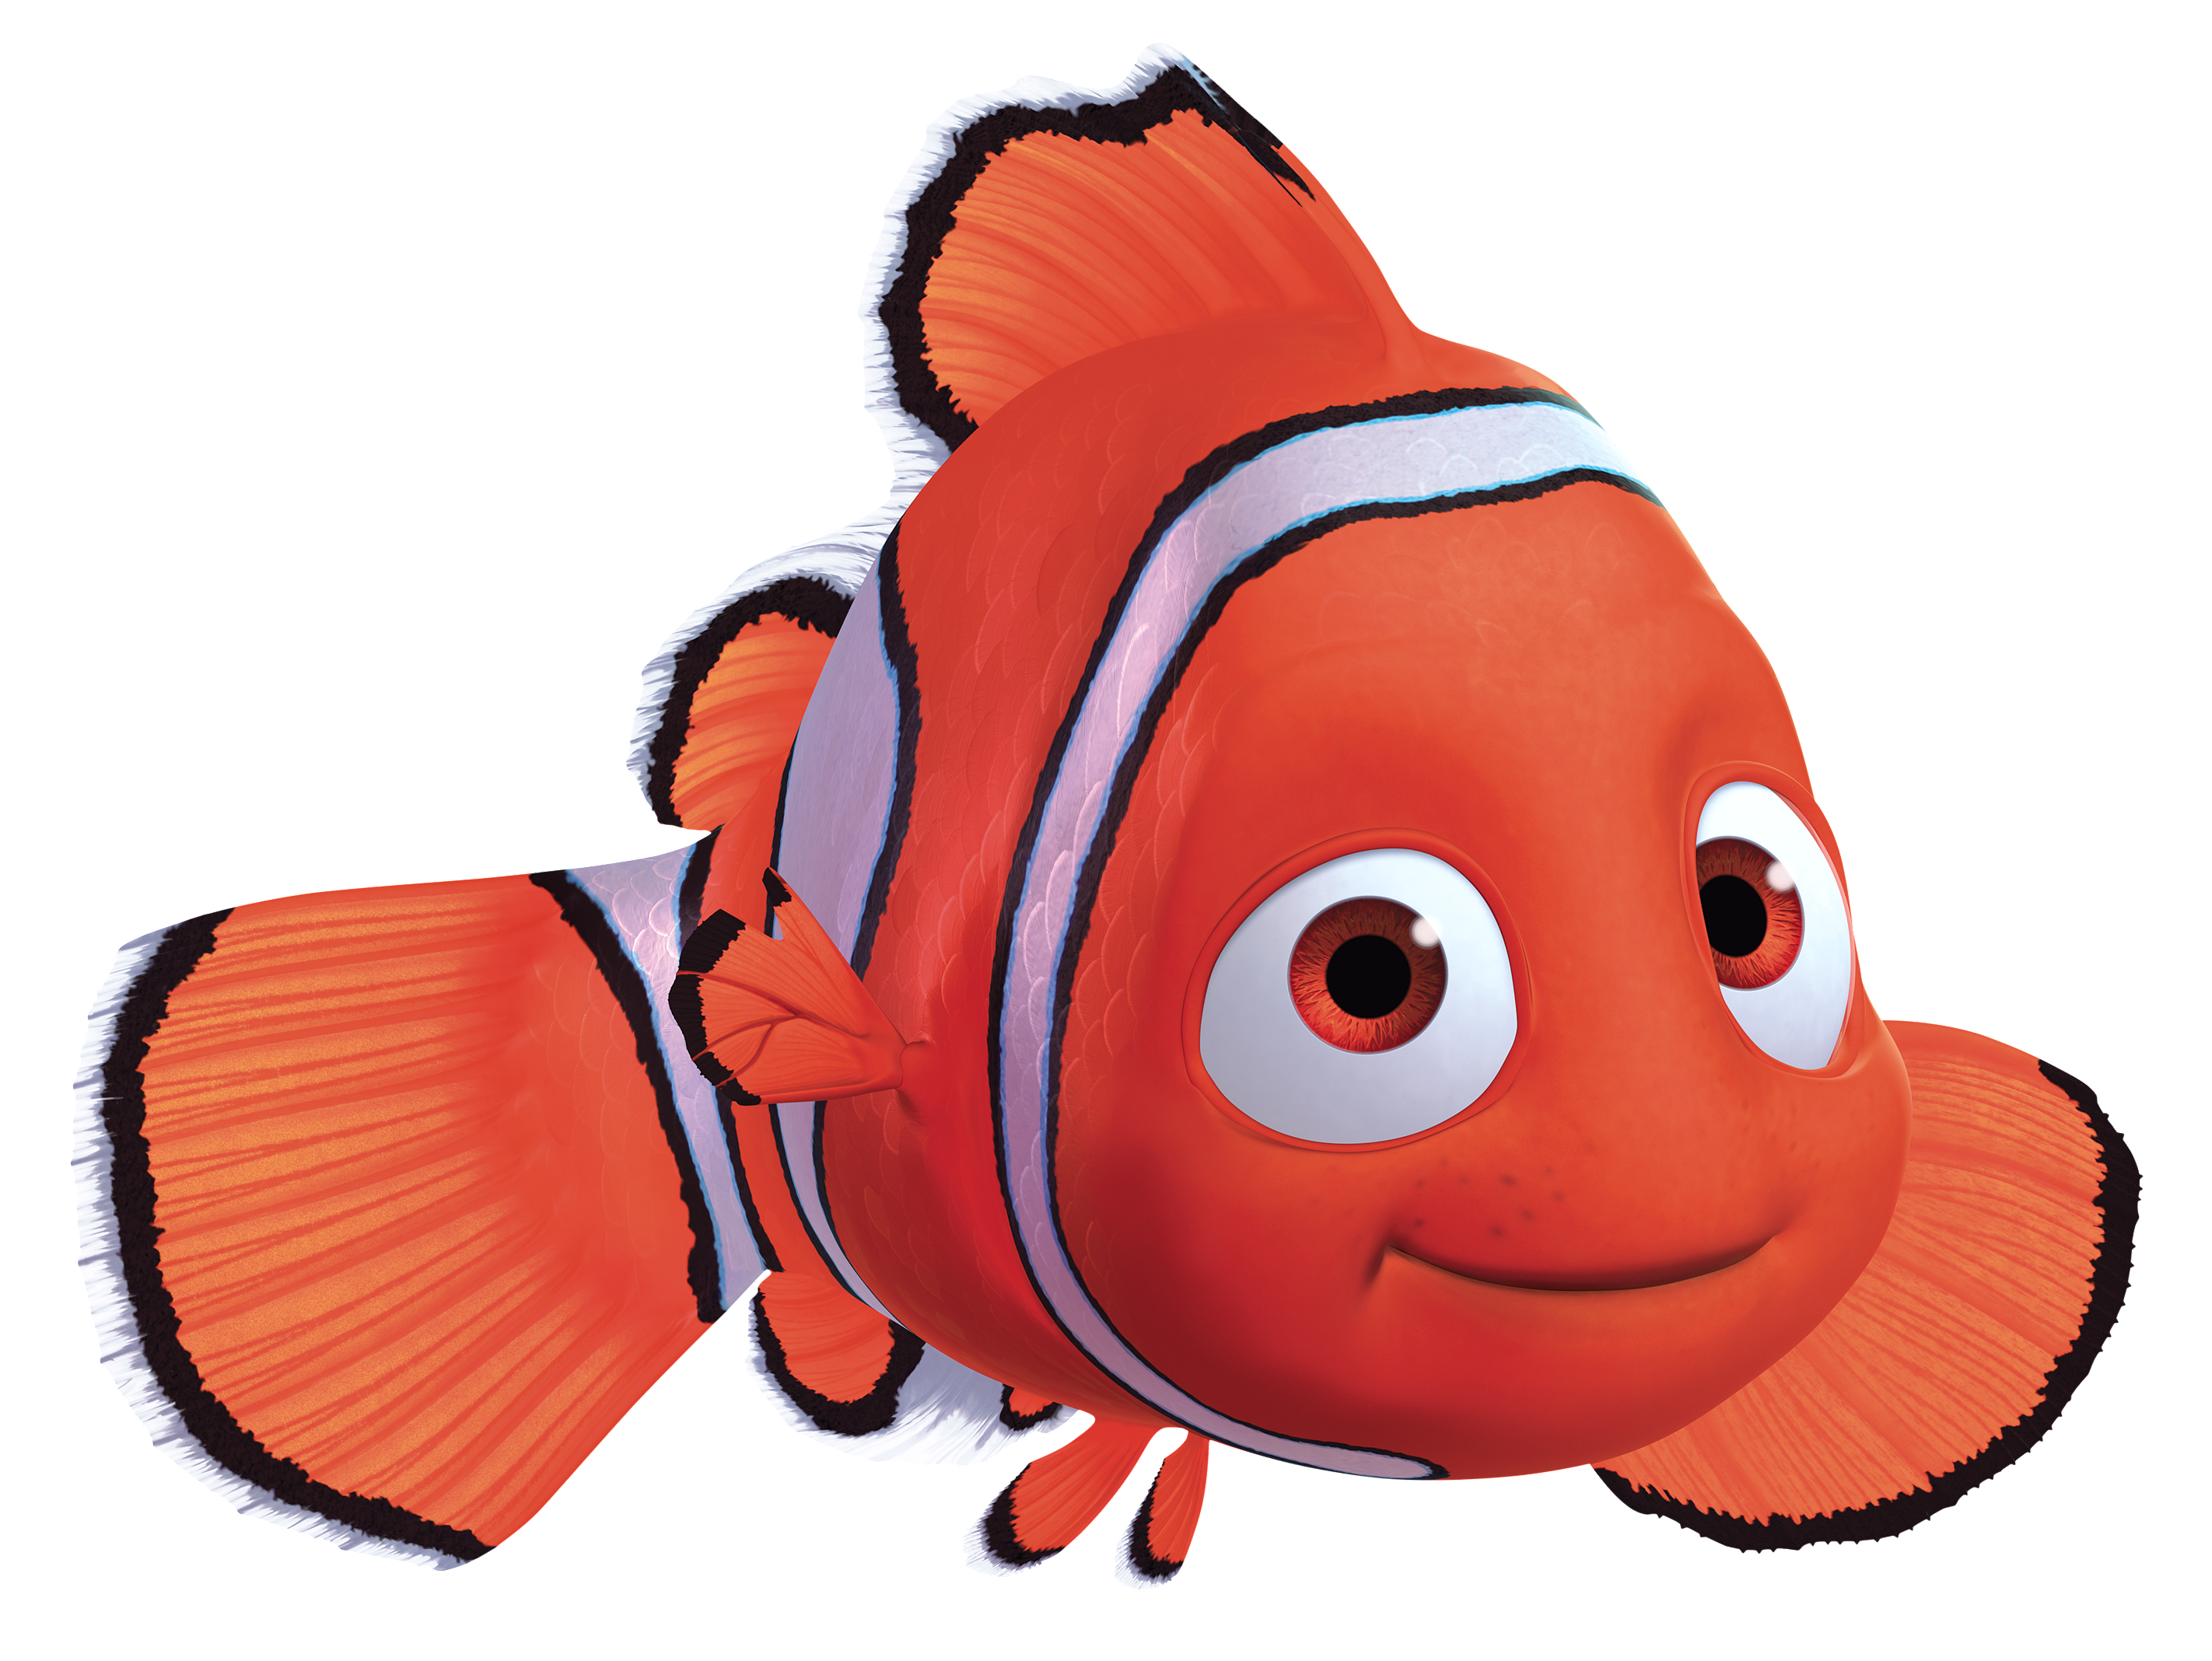 2844x2136 Finding Nemo Characters Dory Clipart Free Clip Art Images